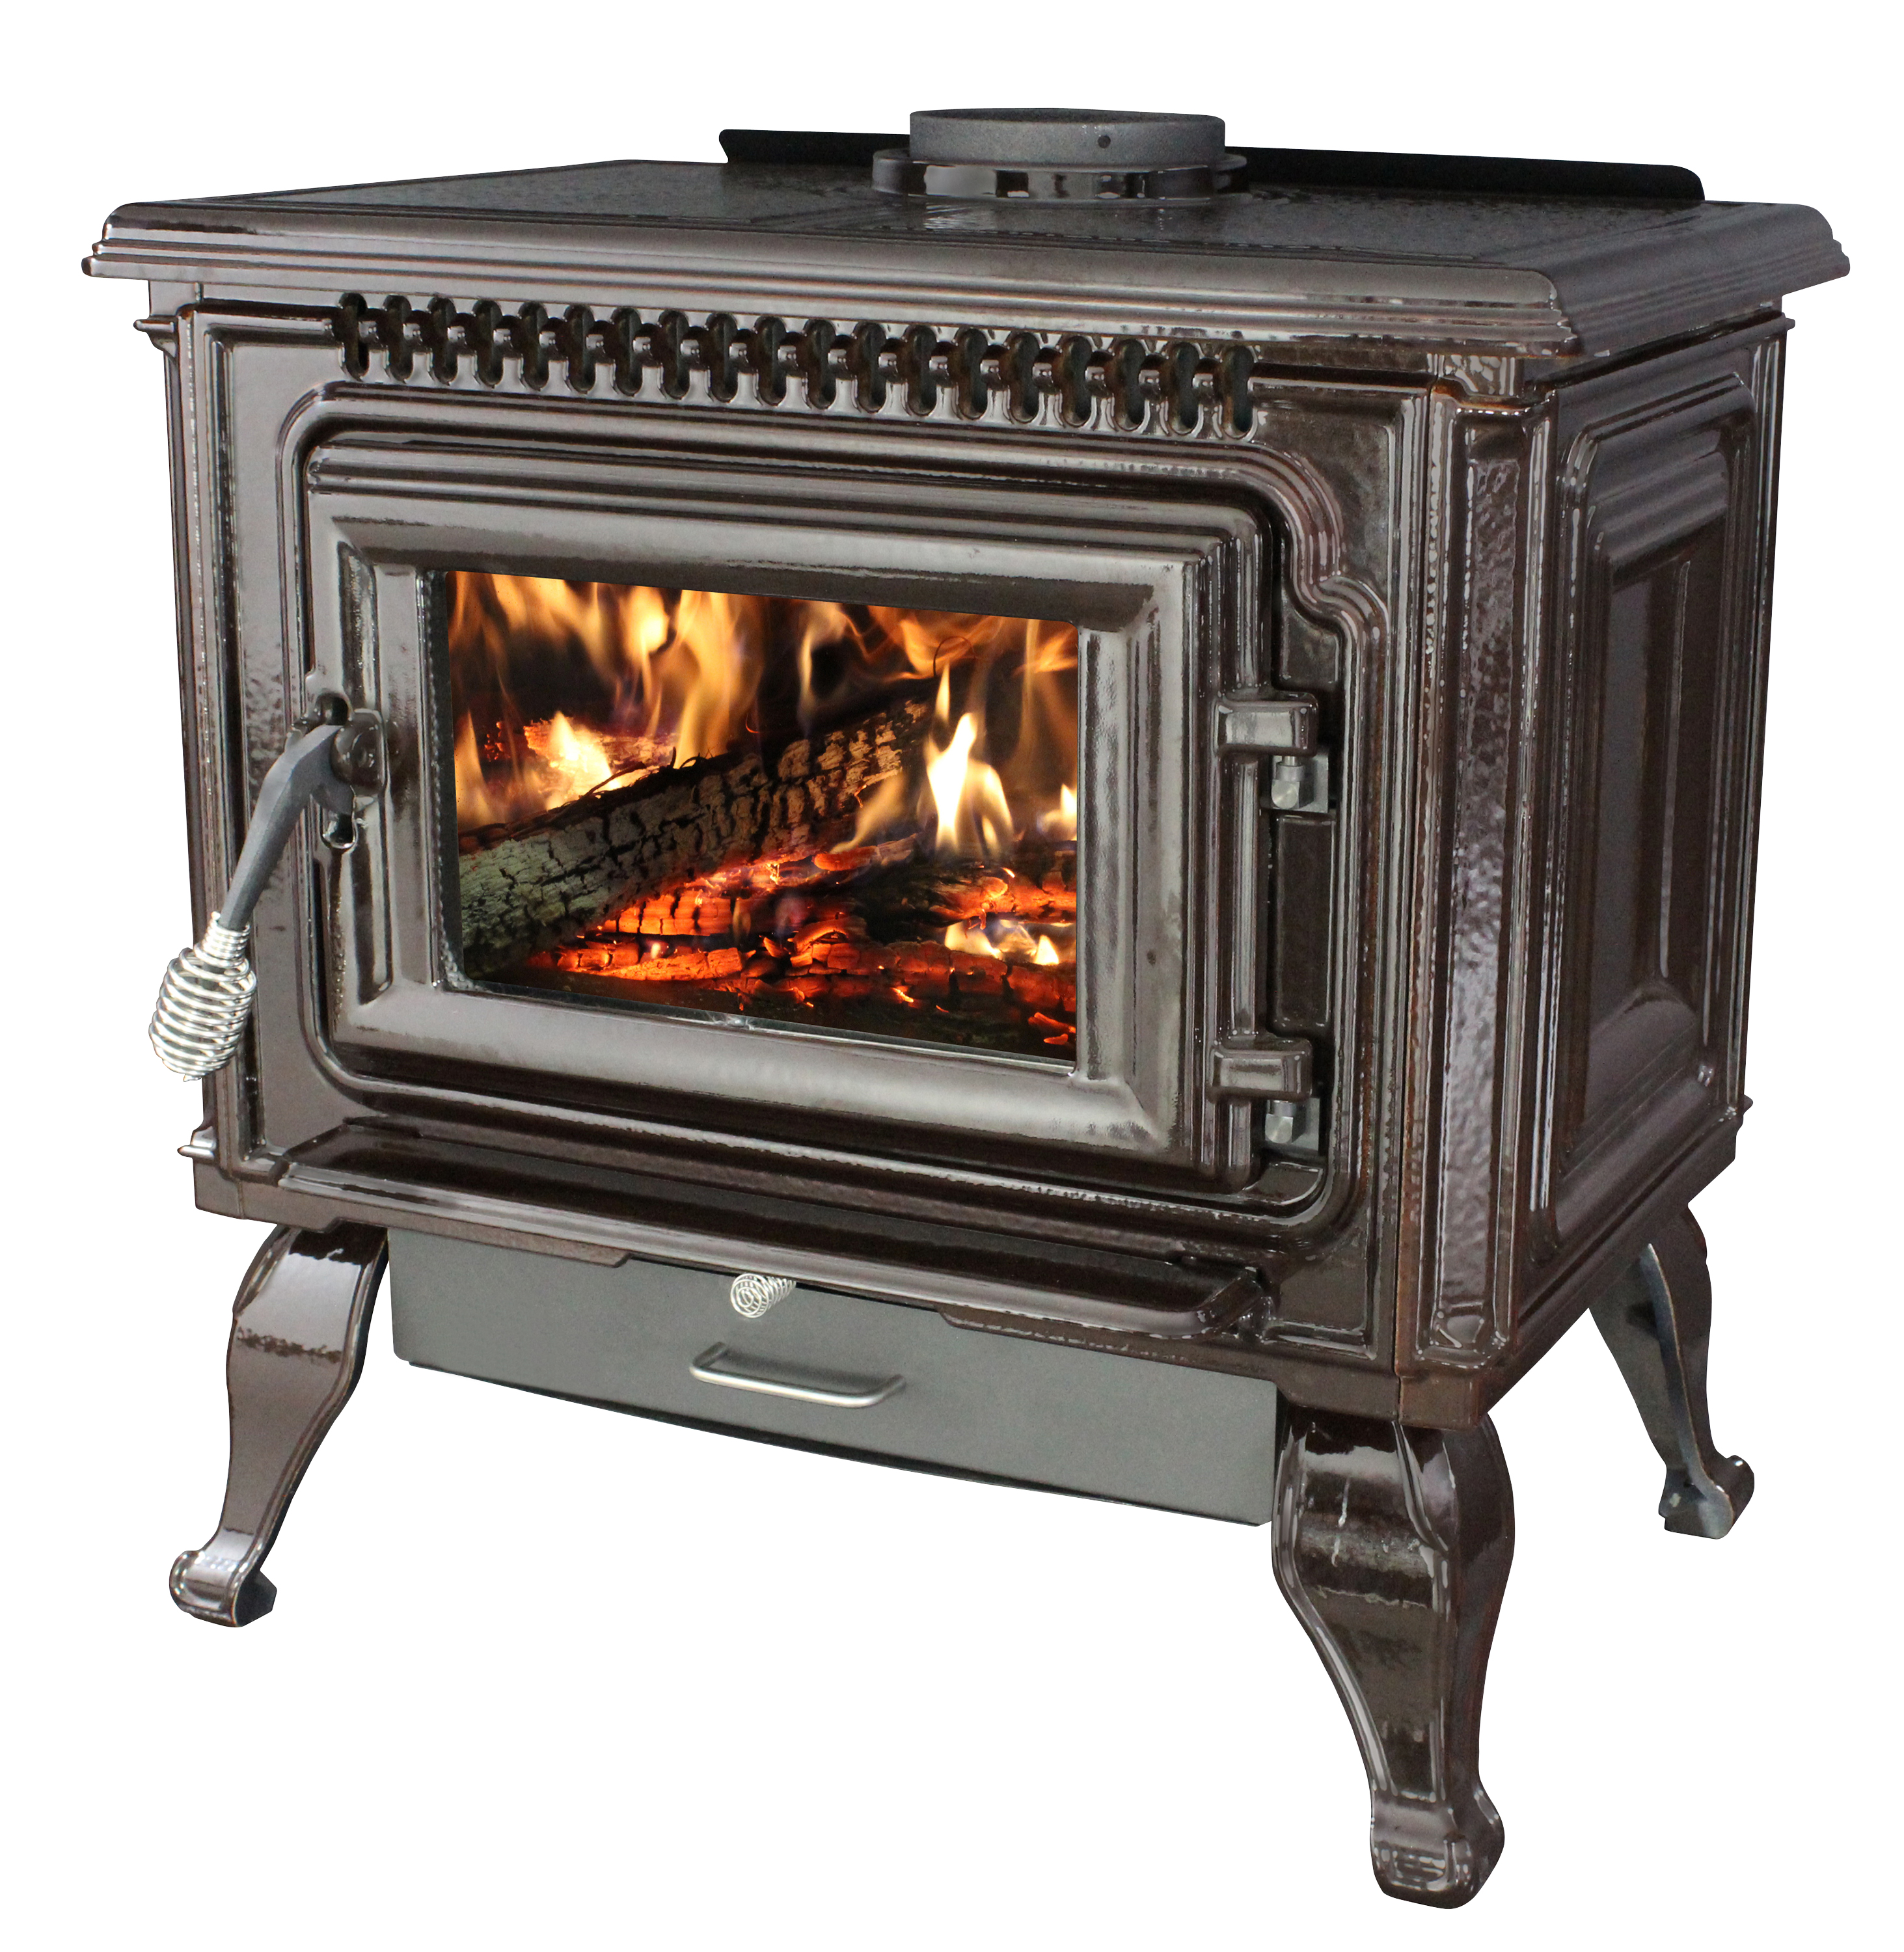 Ashley 2,000 Sq. Ft. EPA Certified Mahogany Enameled Porcelain Cast Iron Wood stove with Blower